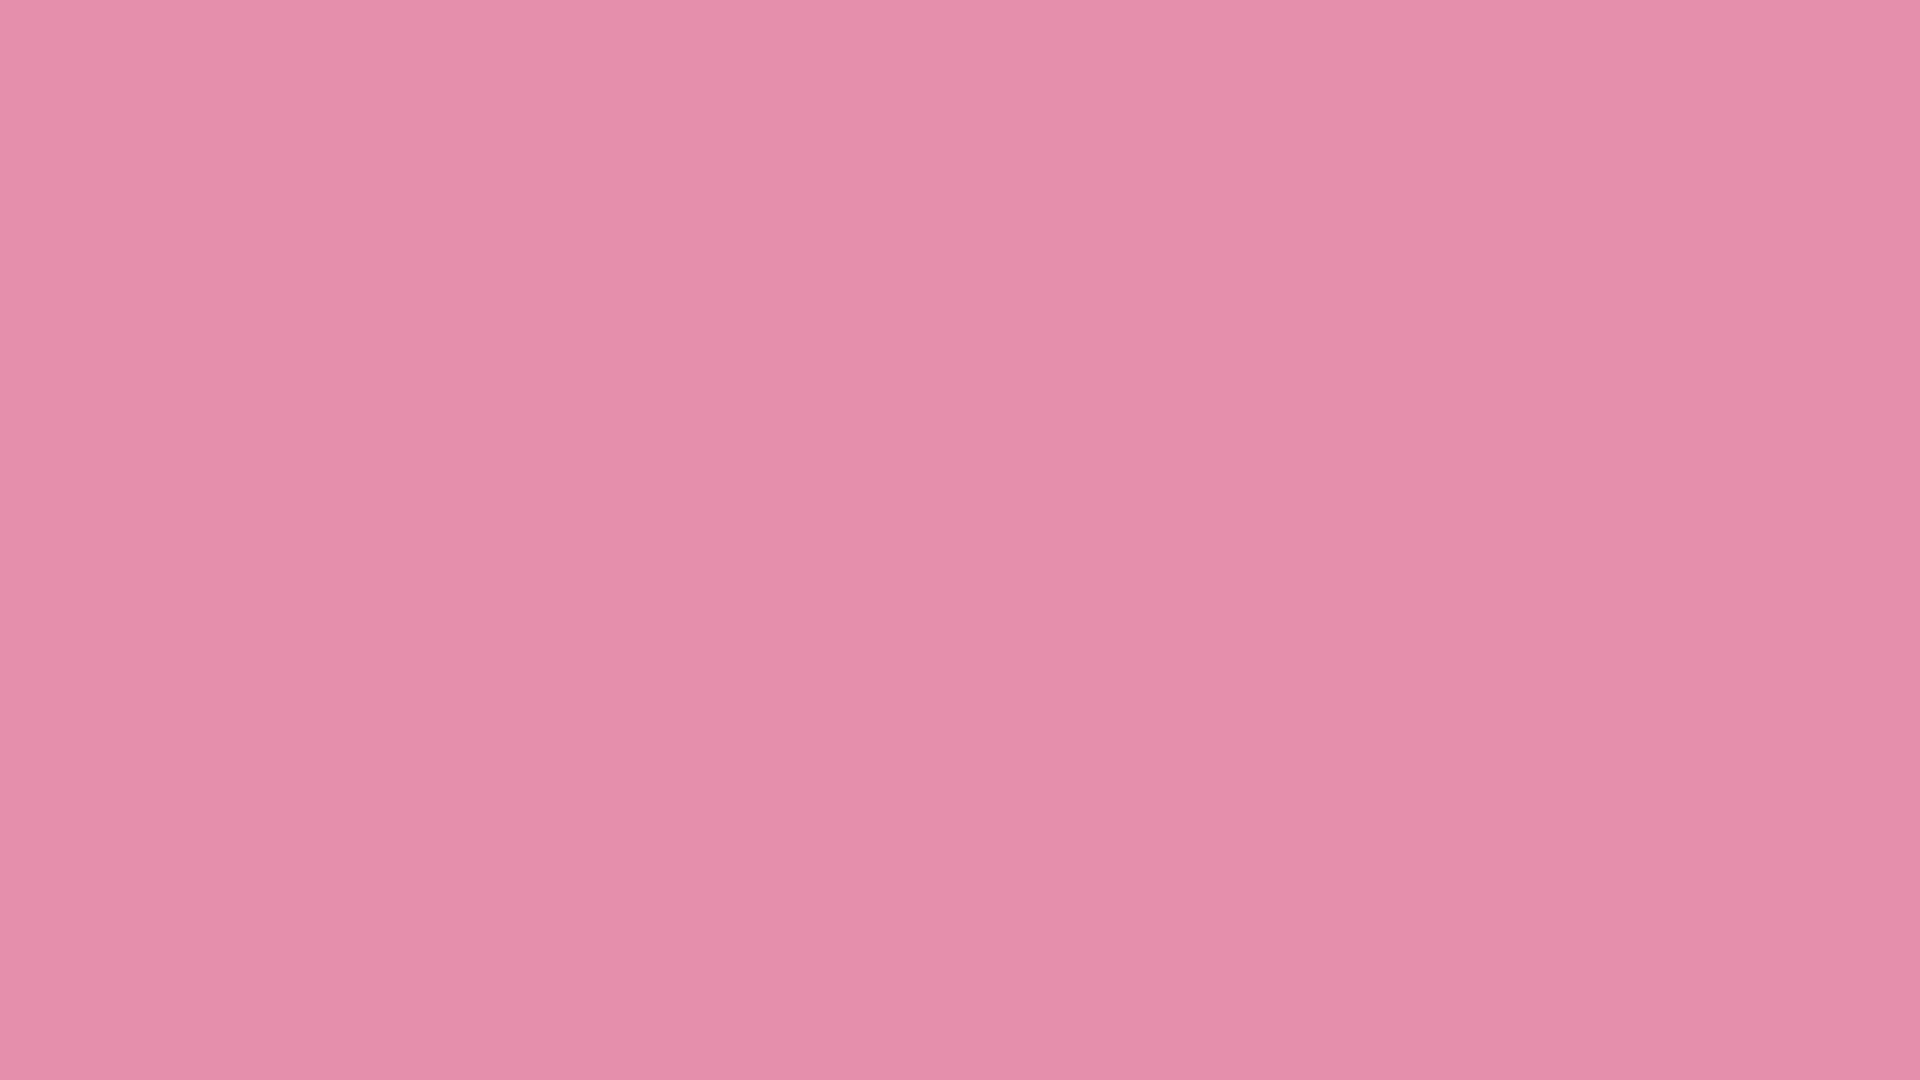 1920x1080 Charm Pink Solid Color Background